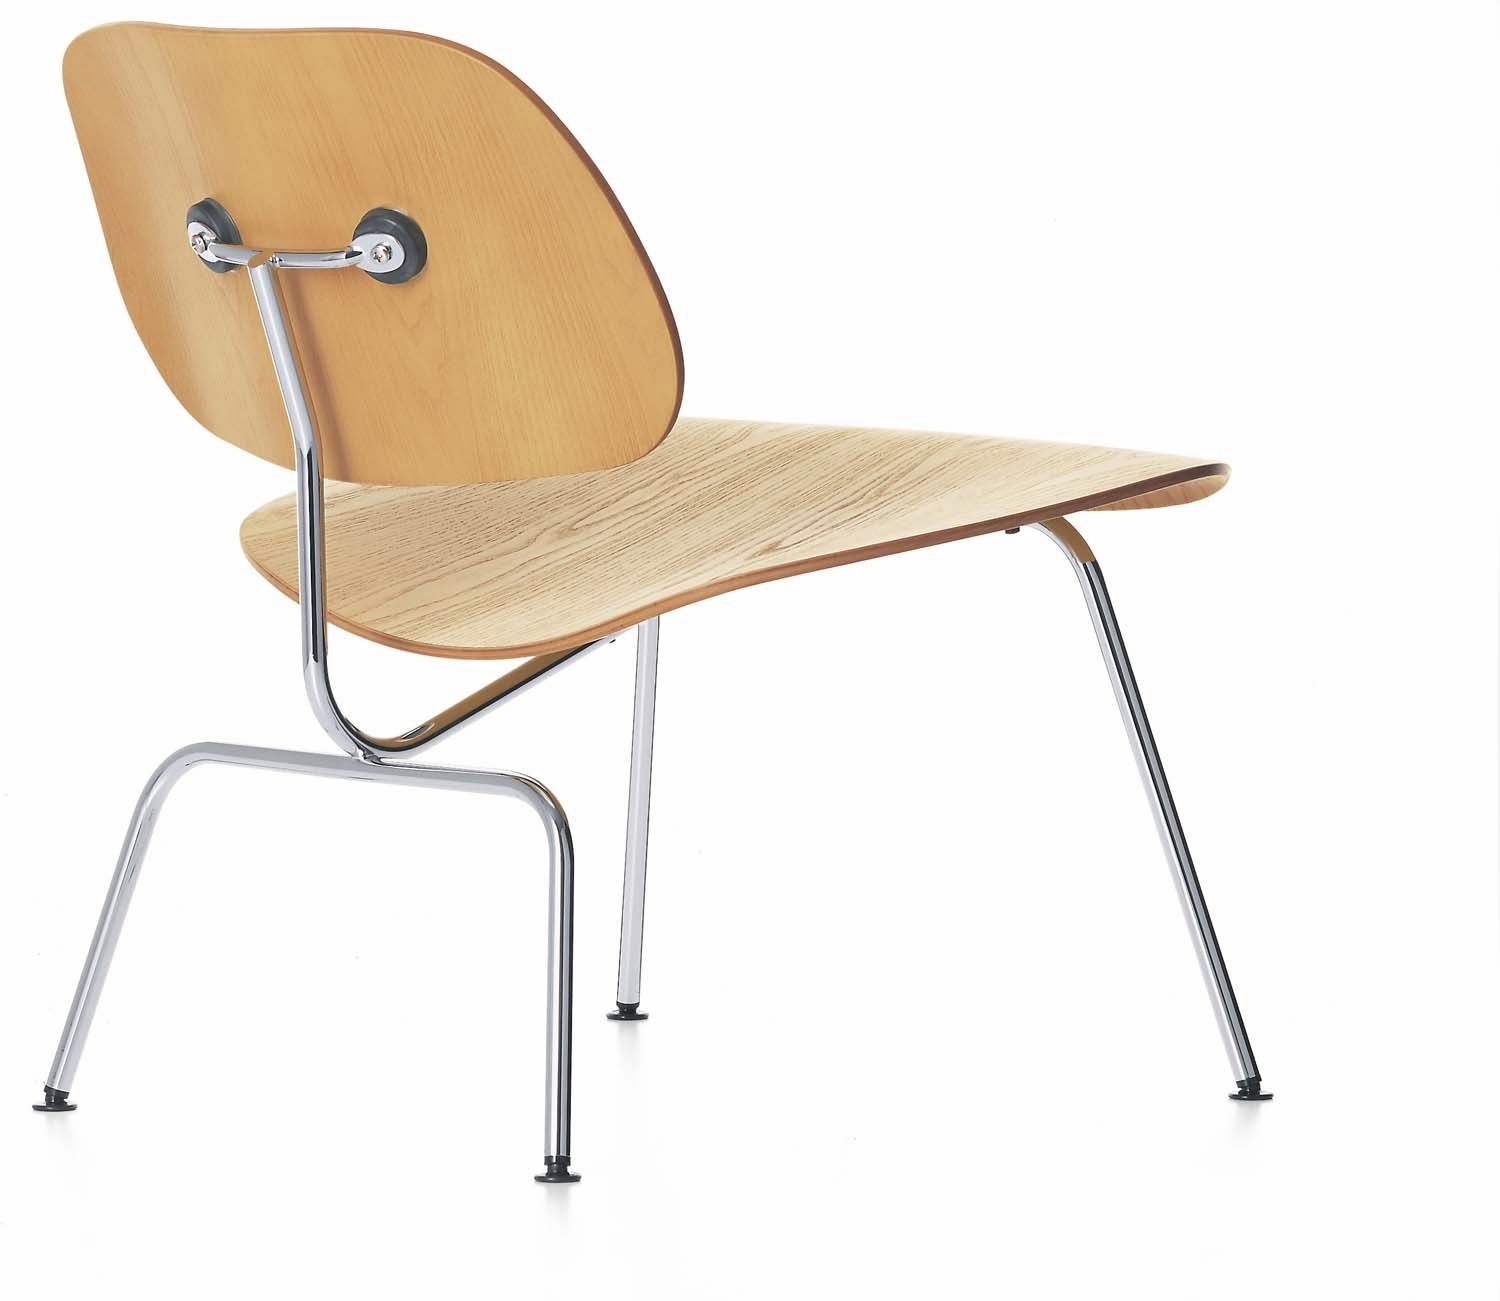 fireside chair plywood metal by charles u ray eames lcm